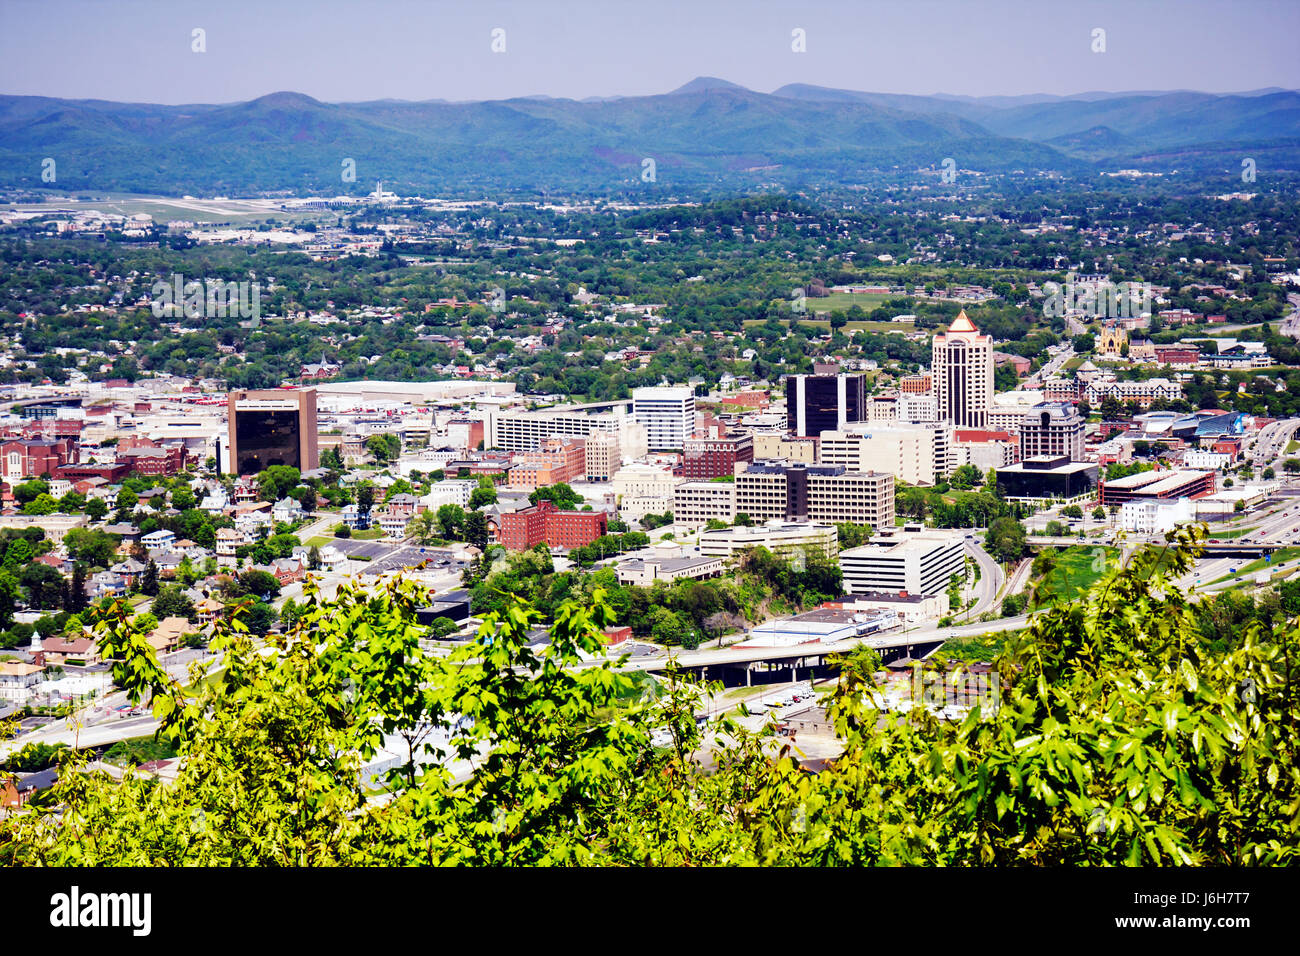 Virginia Roanoke Mill Mountain Overlook view downtown city valley Allegheny Mountains Blue Ridge Appalachian - Stock Image